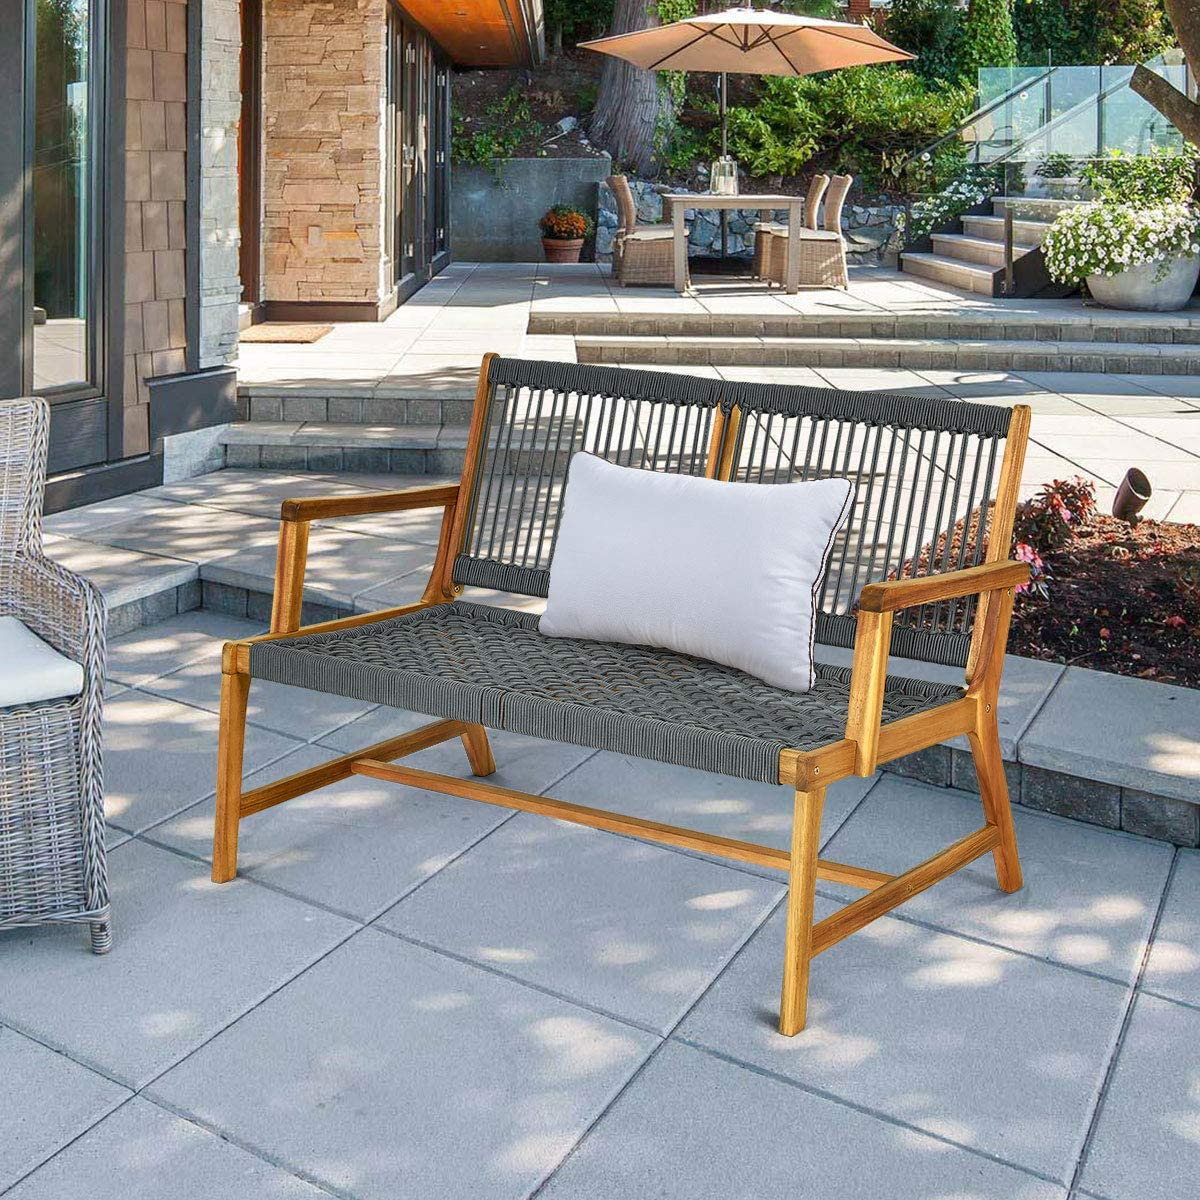 Tangkula 2-Person Patio Acacia Wood Bench Loveseat Chair, Outdoor Patio Bench Acacia Wood Bench in Teak Oil Finish, Patio Loveseat Rope Bench for Balcony Deck Poolside Porch Teak